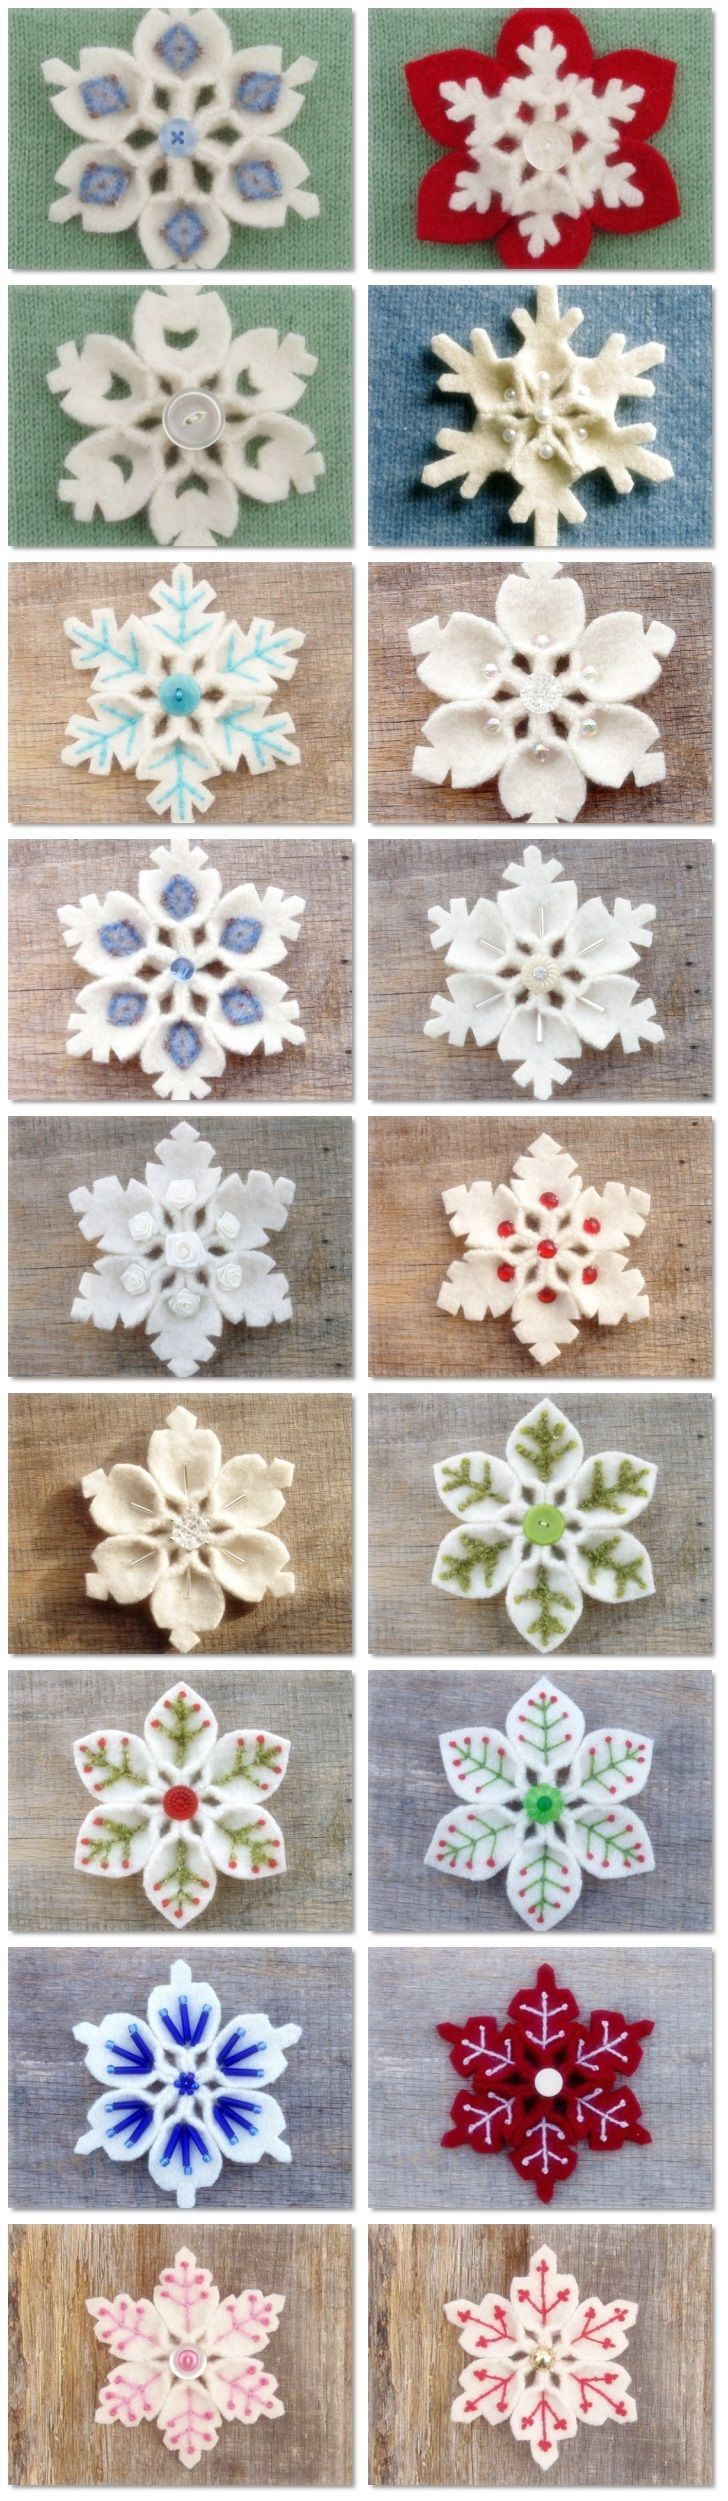 Ceramic snowflake ornaments - How To Make Felt Snowflake Diy Step By Step Tutorial Instruction Welcome Craft